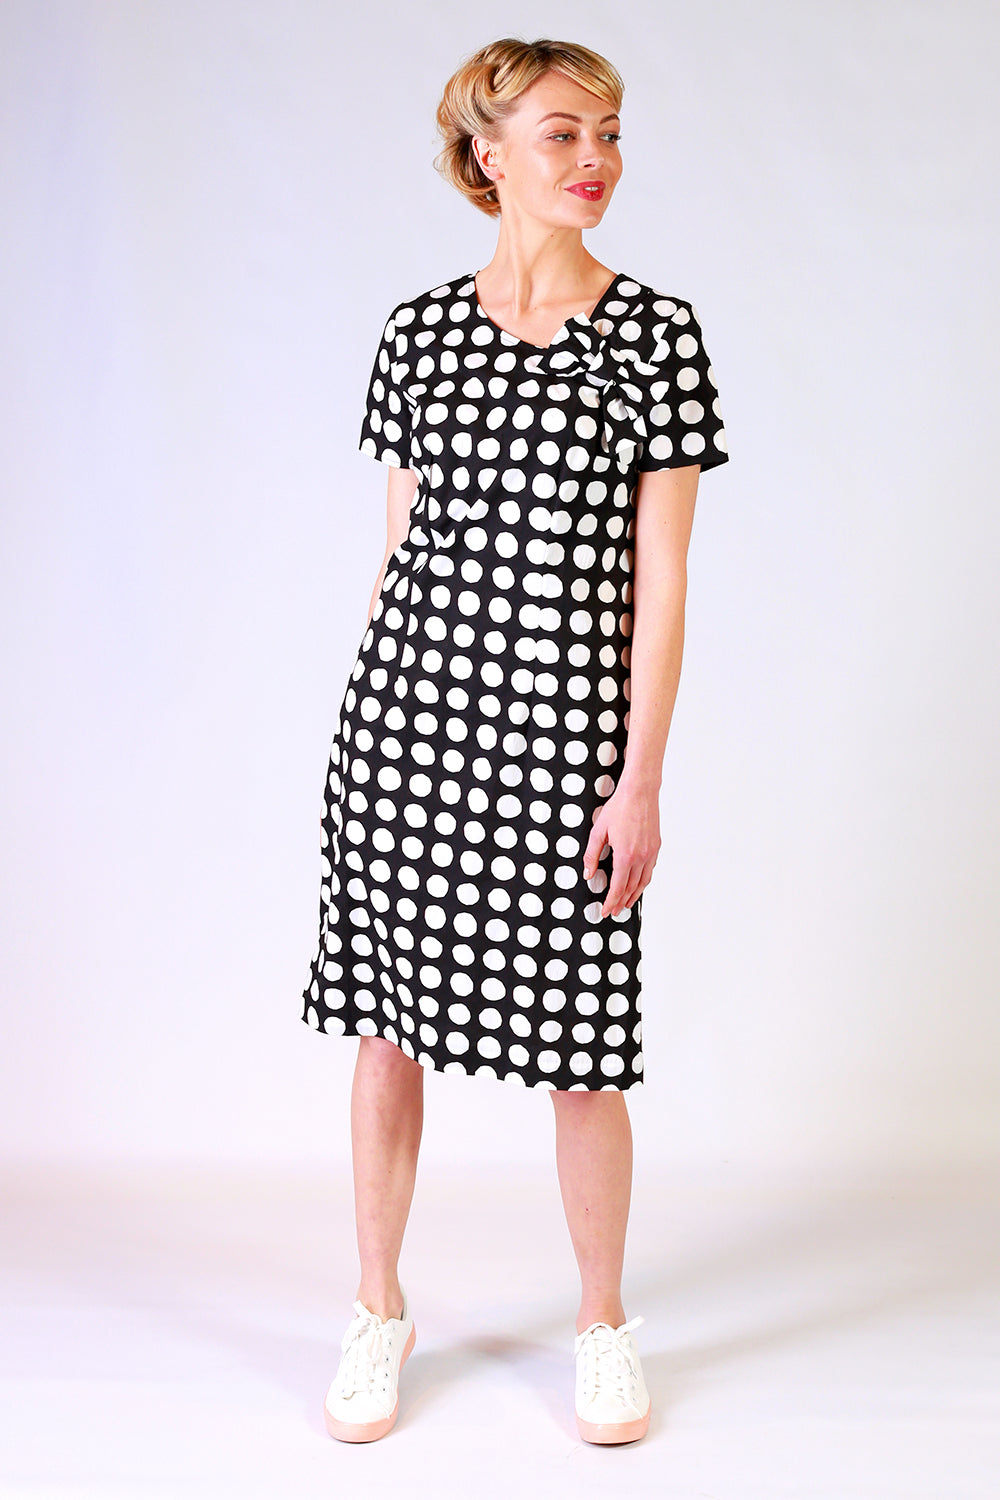 Hilary Holly Dress - SALE